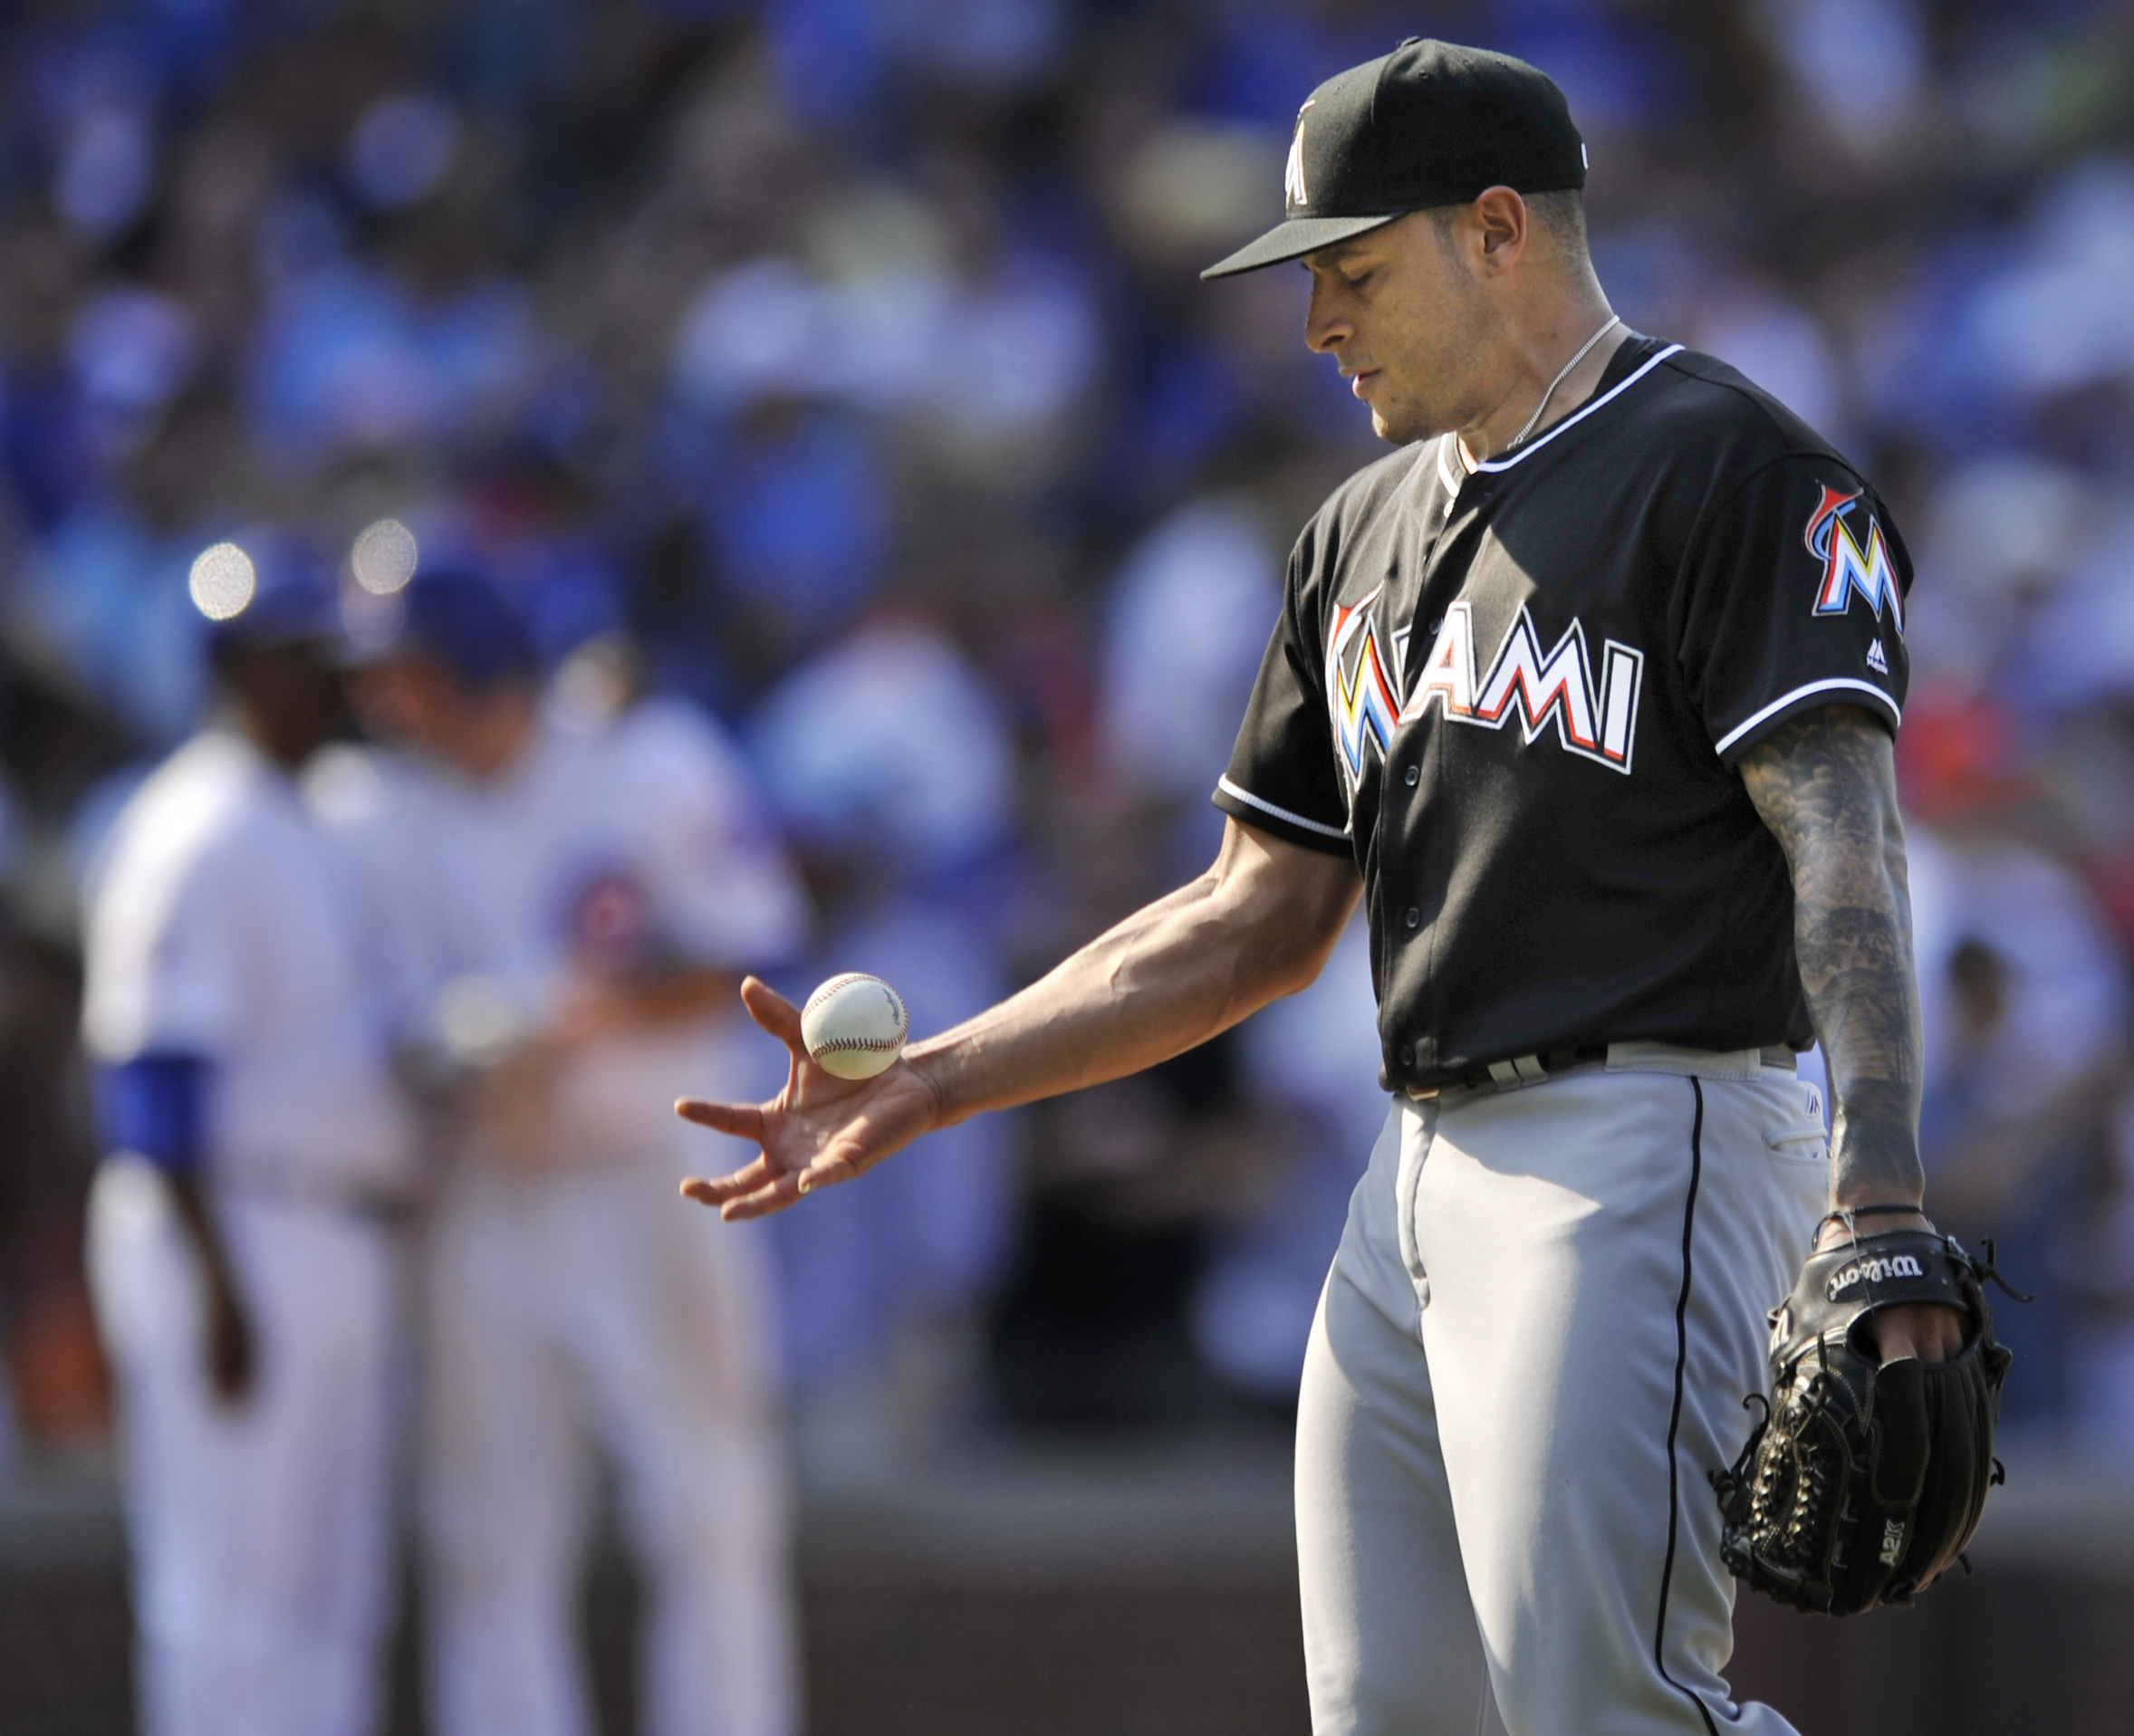 Miami Marlins closing pitcher A.J. Ramos reacts after walking Chicago Cubs' Ben Zobrist, scoring Javier Baez and loading the bases during the ninth inning of a baseball game Wednesday, Aug. 3, 2016, in Chicago. Chicago won 5-4. (AP Photo/Paul Beaty)